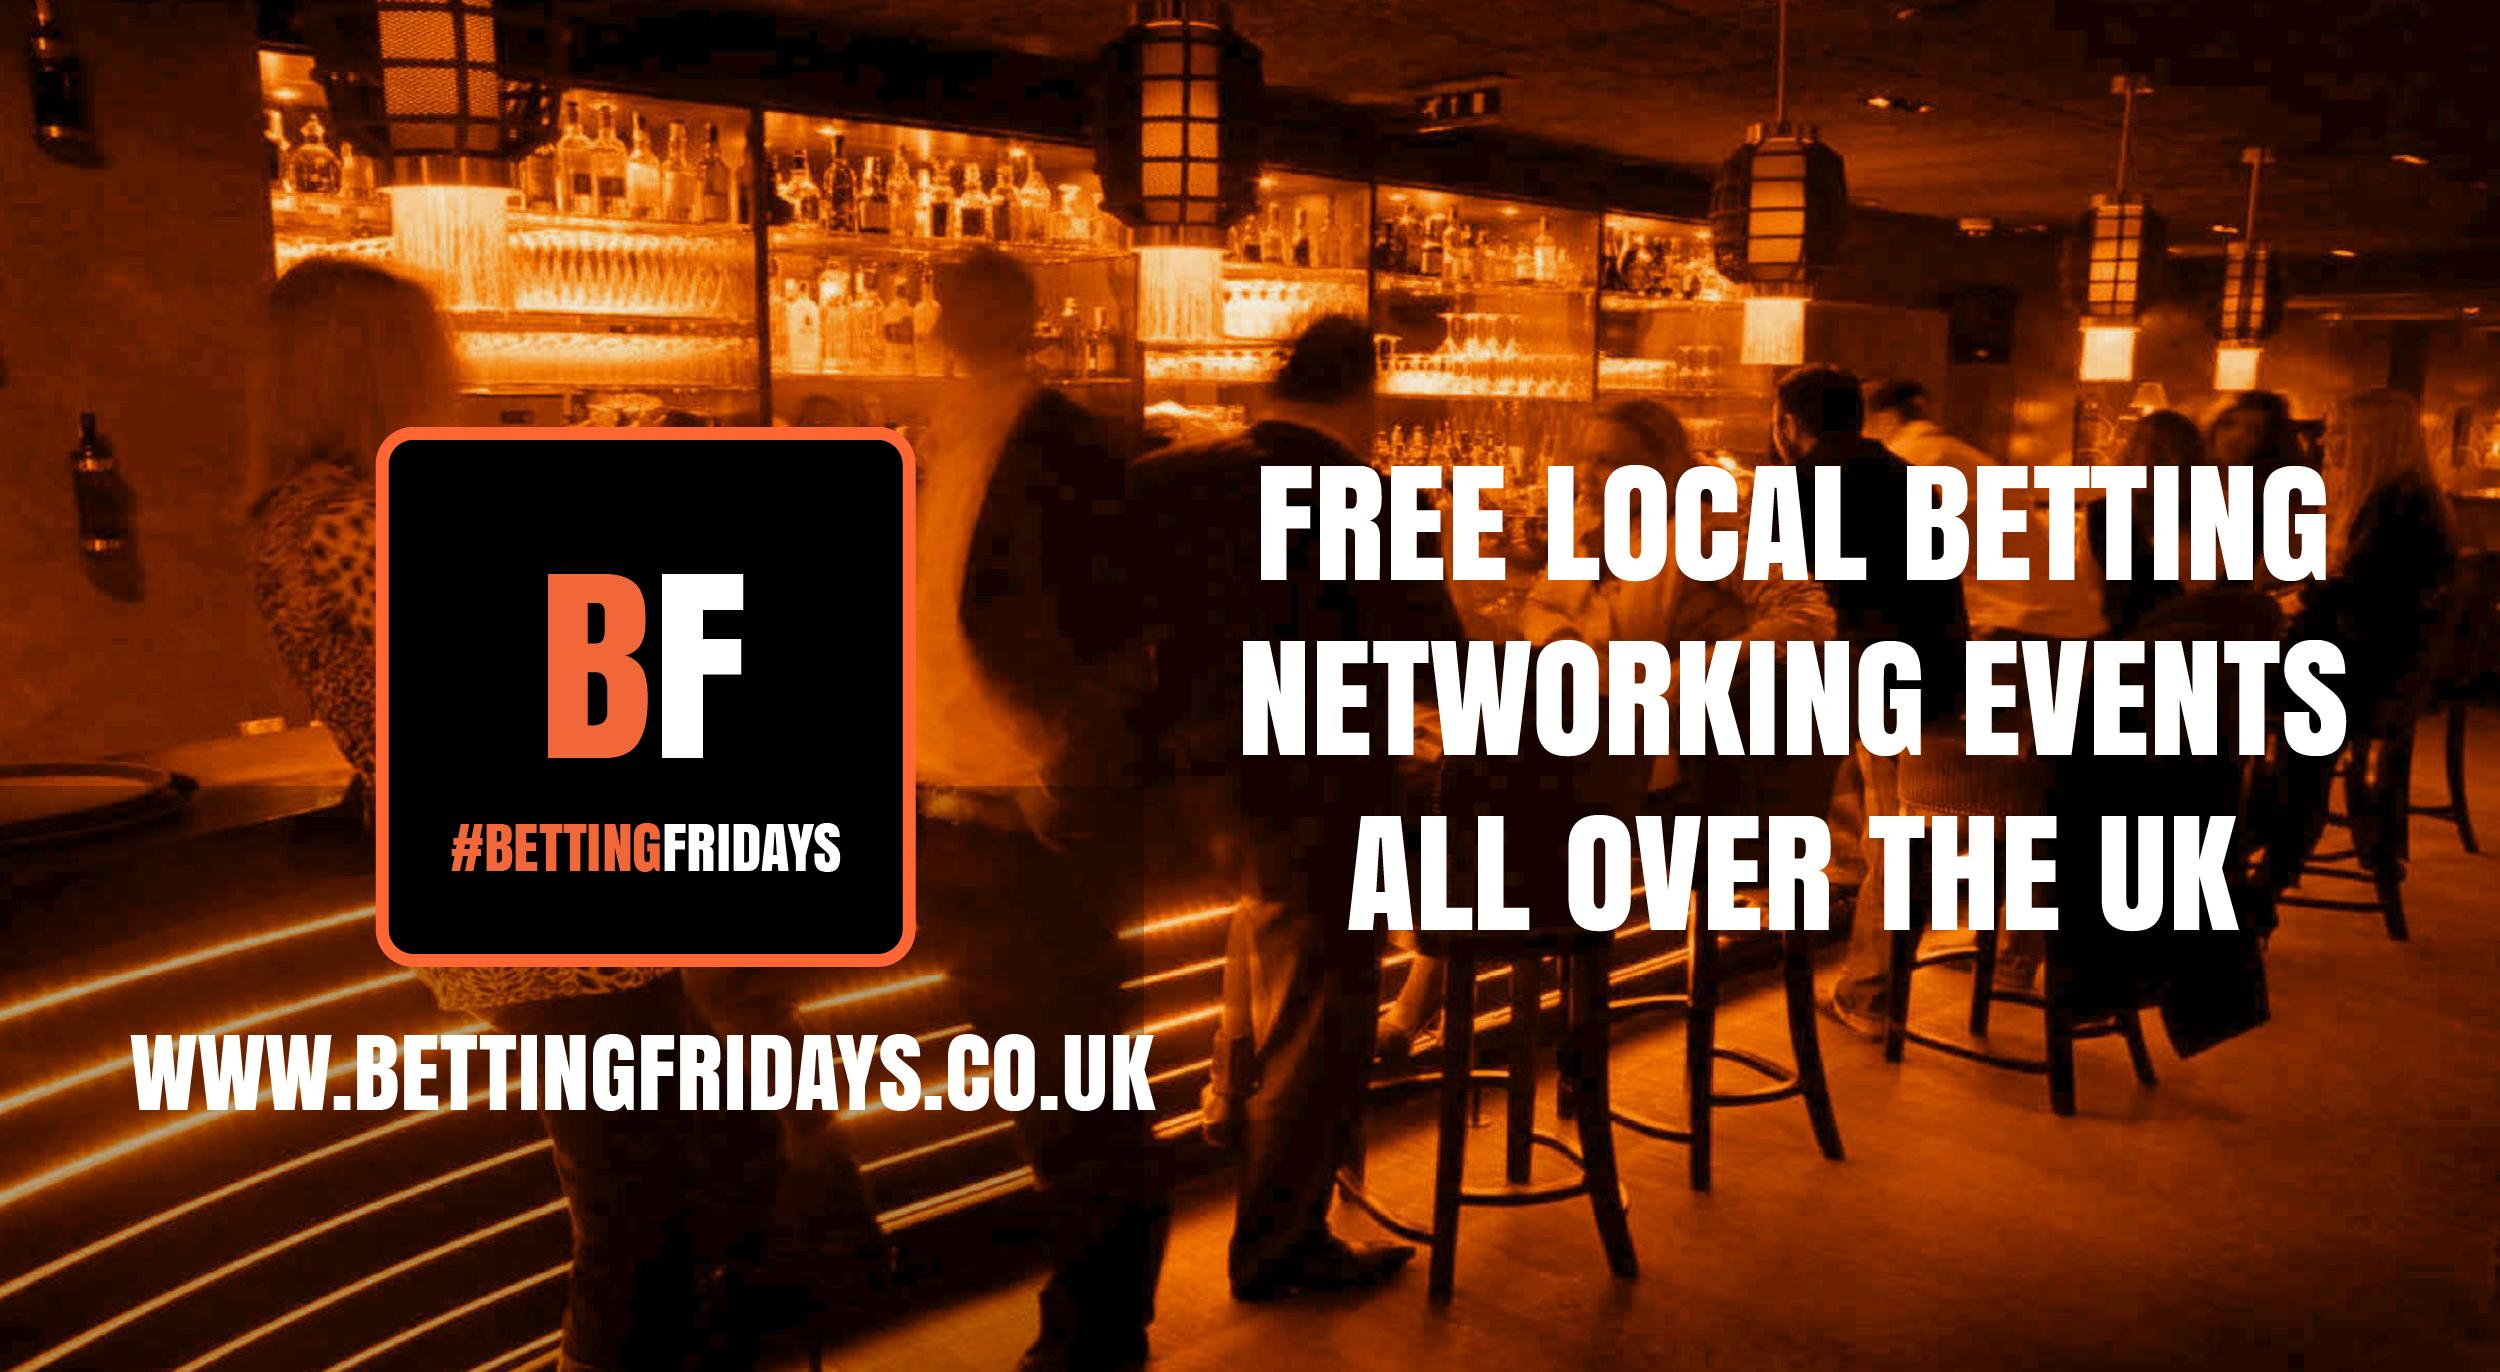 Betting Fridays! Free betting networking event in Nottingham